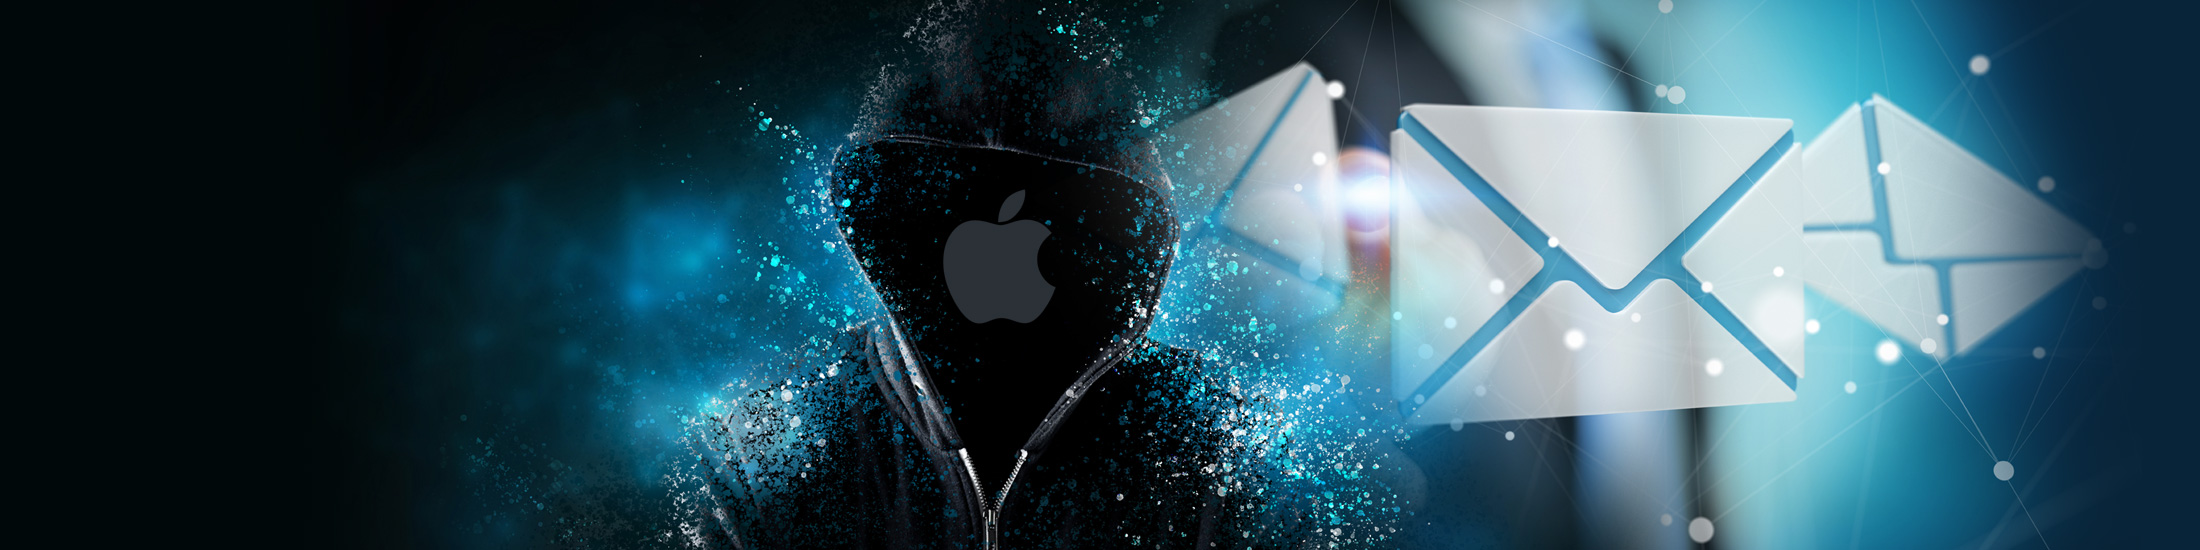 Apple Enables Anonymous Email Addresses, Fraud Pros Cringe